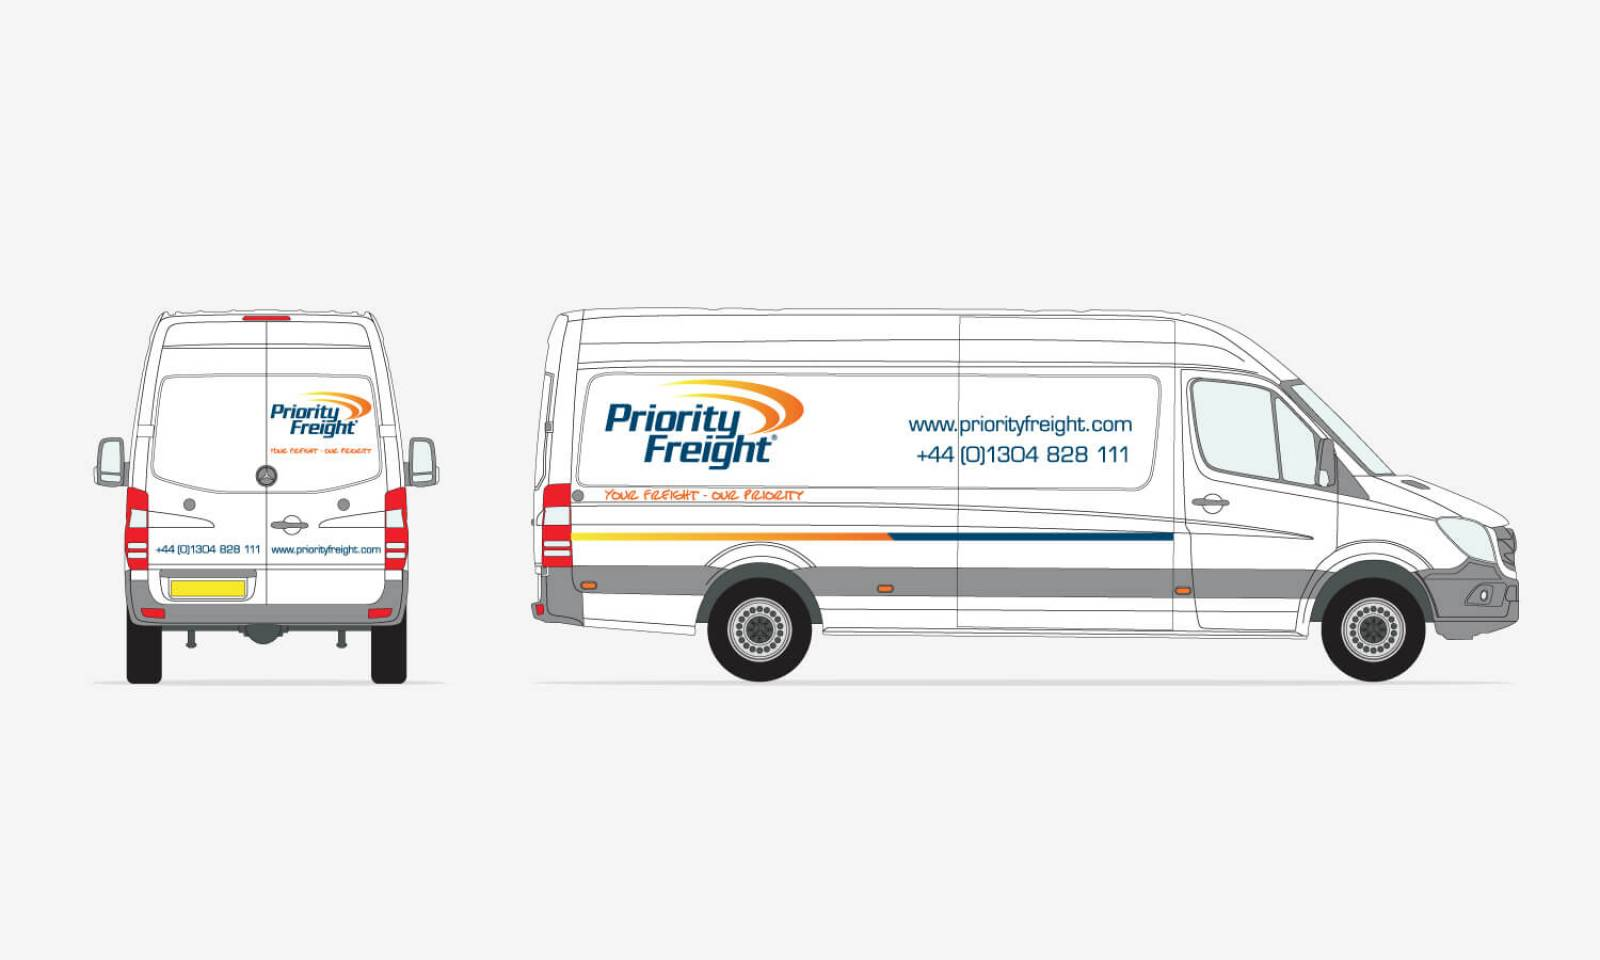 Priority-Freight-van-livery-design-agency-graphic-design-canterbury.jpg